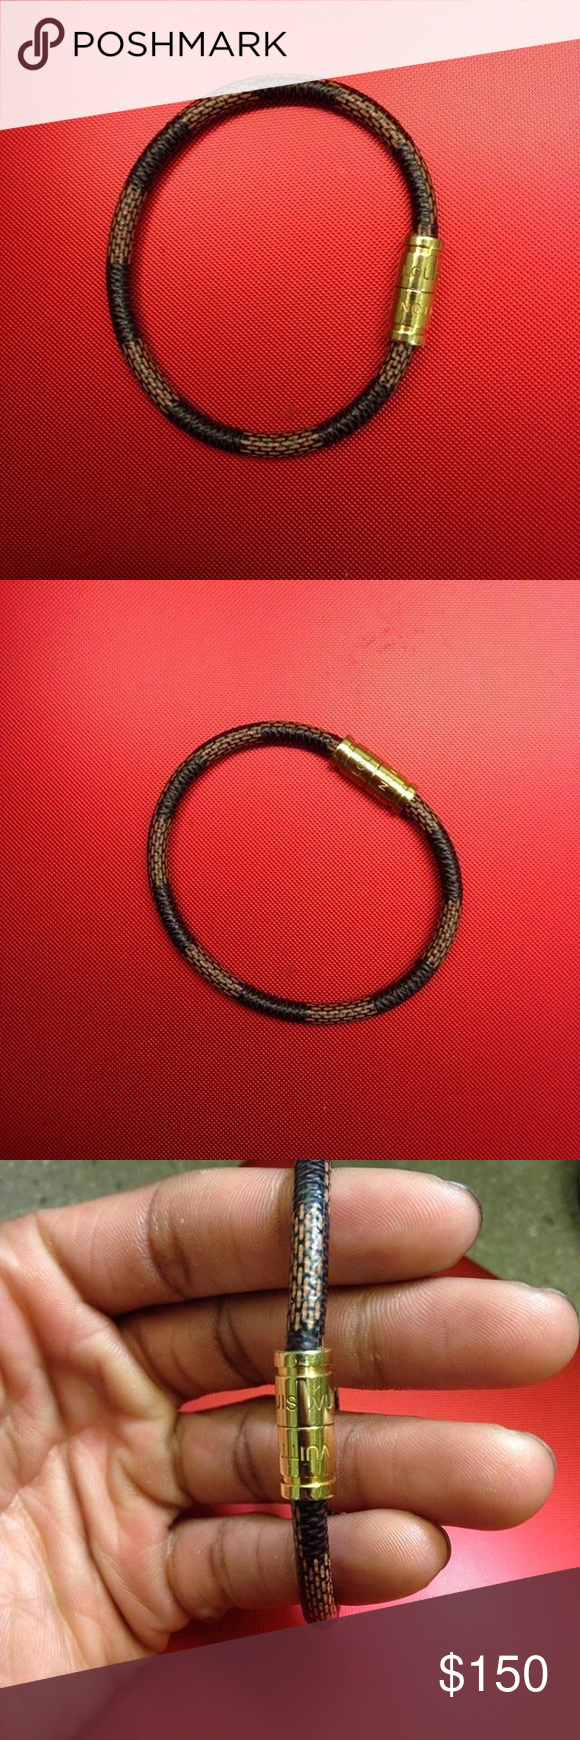 Louis vuitton bracelet retail retail value is new no damages